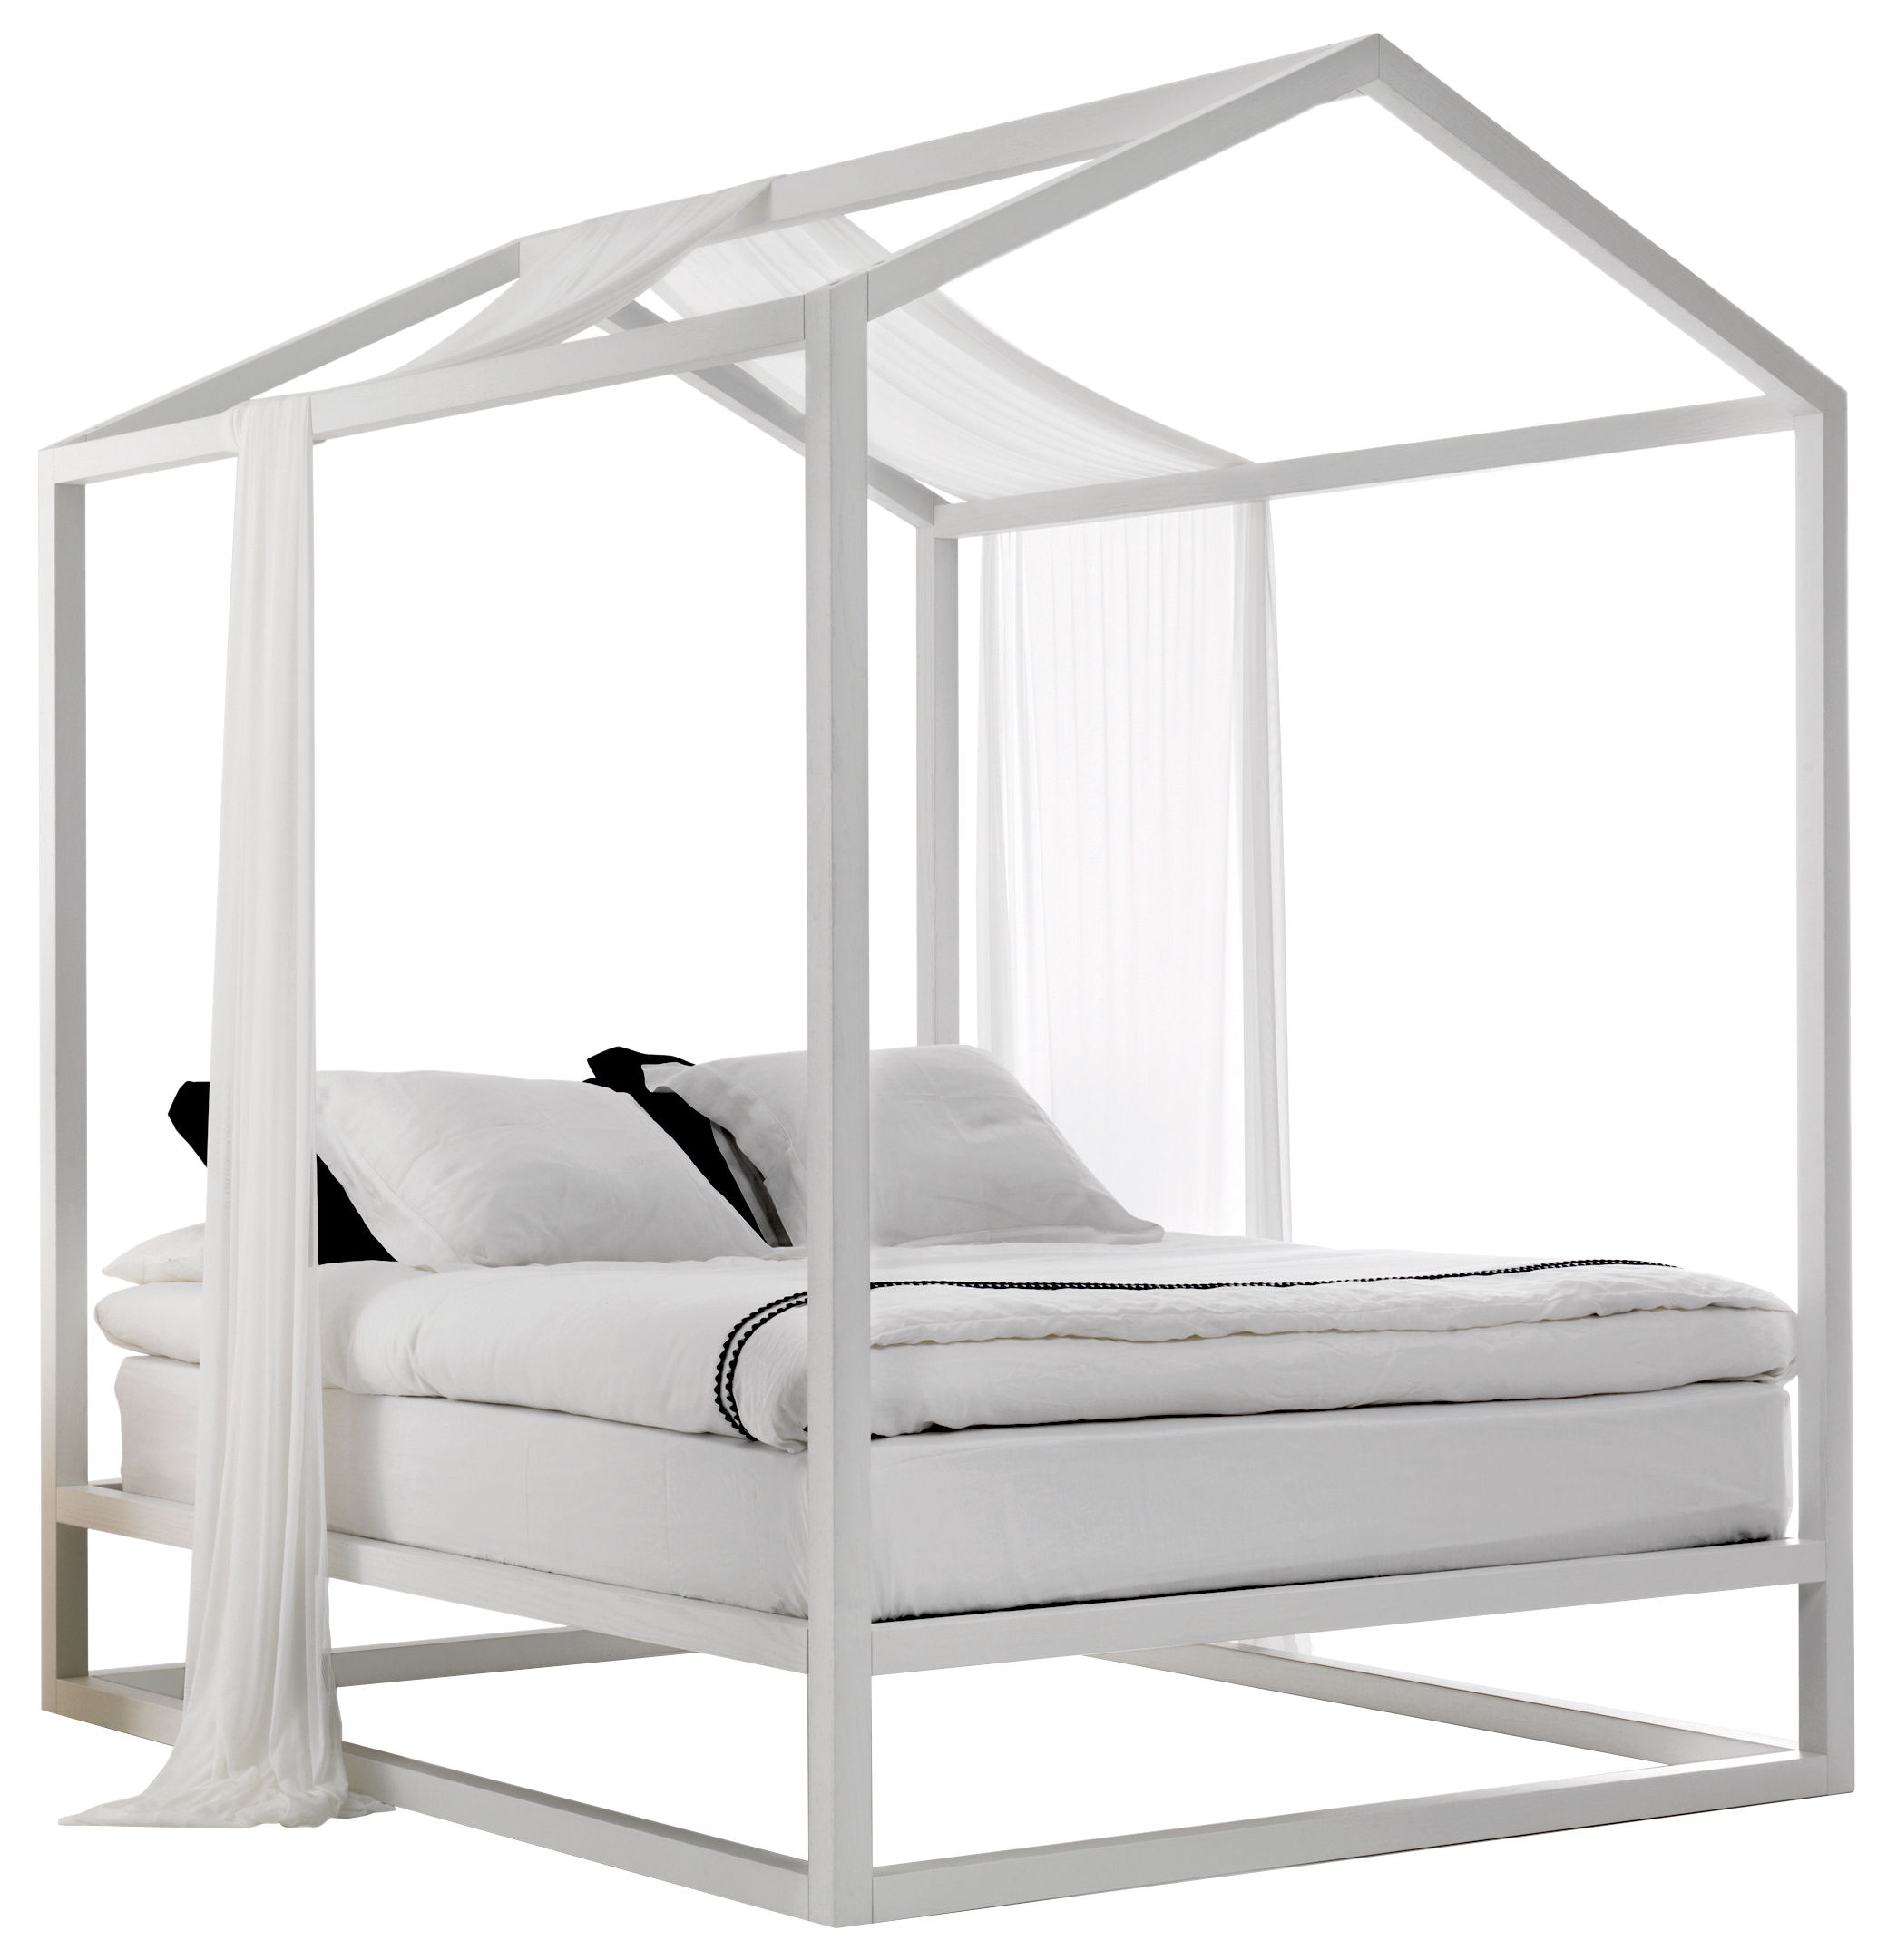 lit baldaquin casetta in canad 213 x 183 x h 235 cm blanc mogg made in design. Black Bedroom Furniture Sets. Home Design Ideas